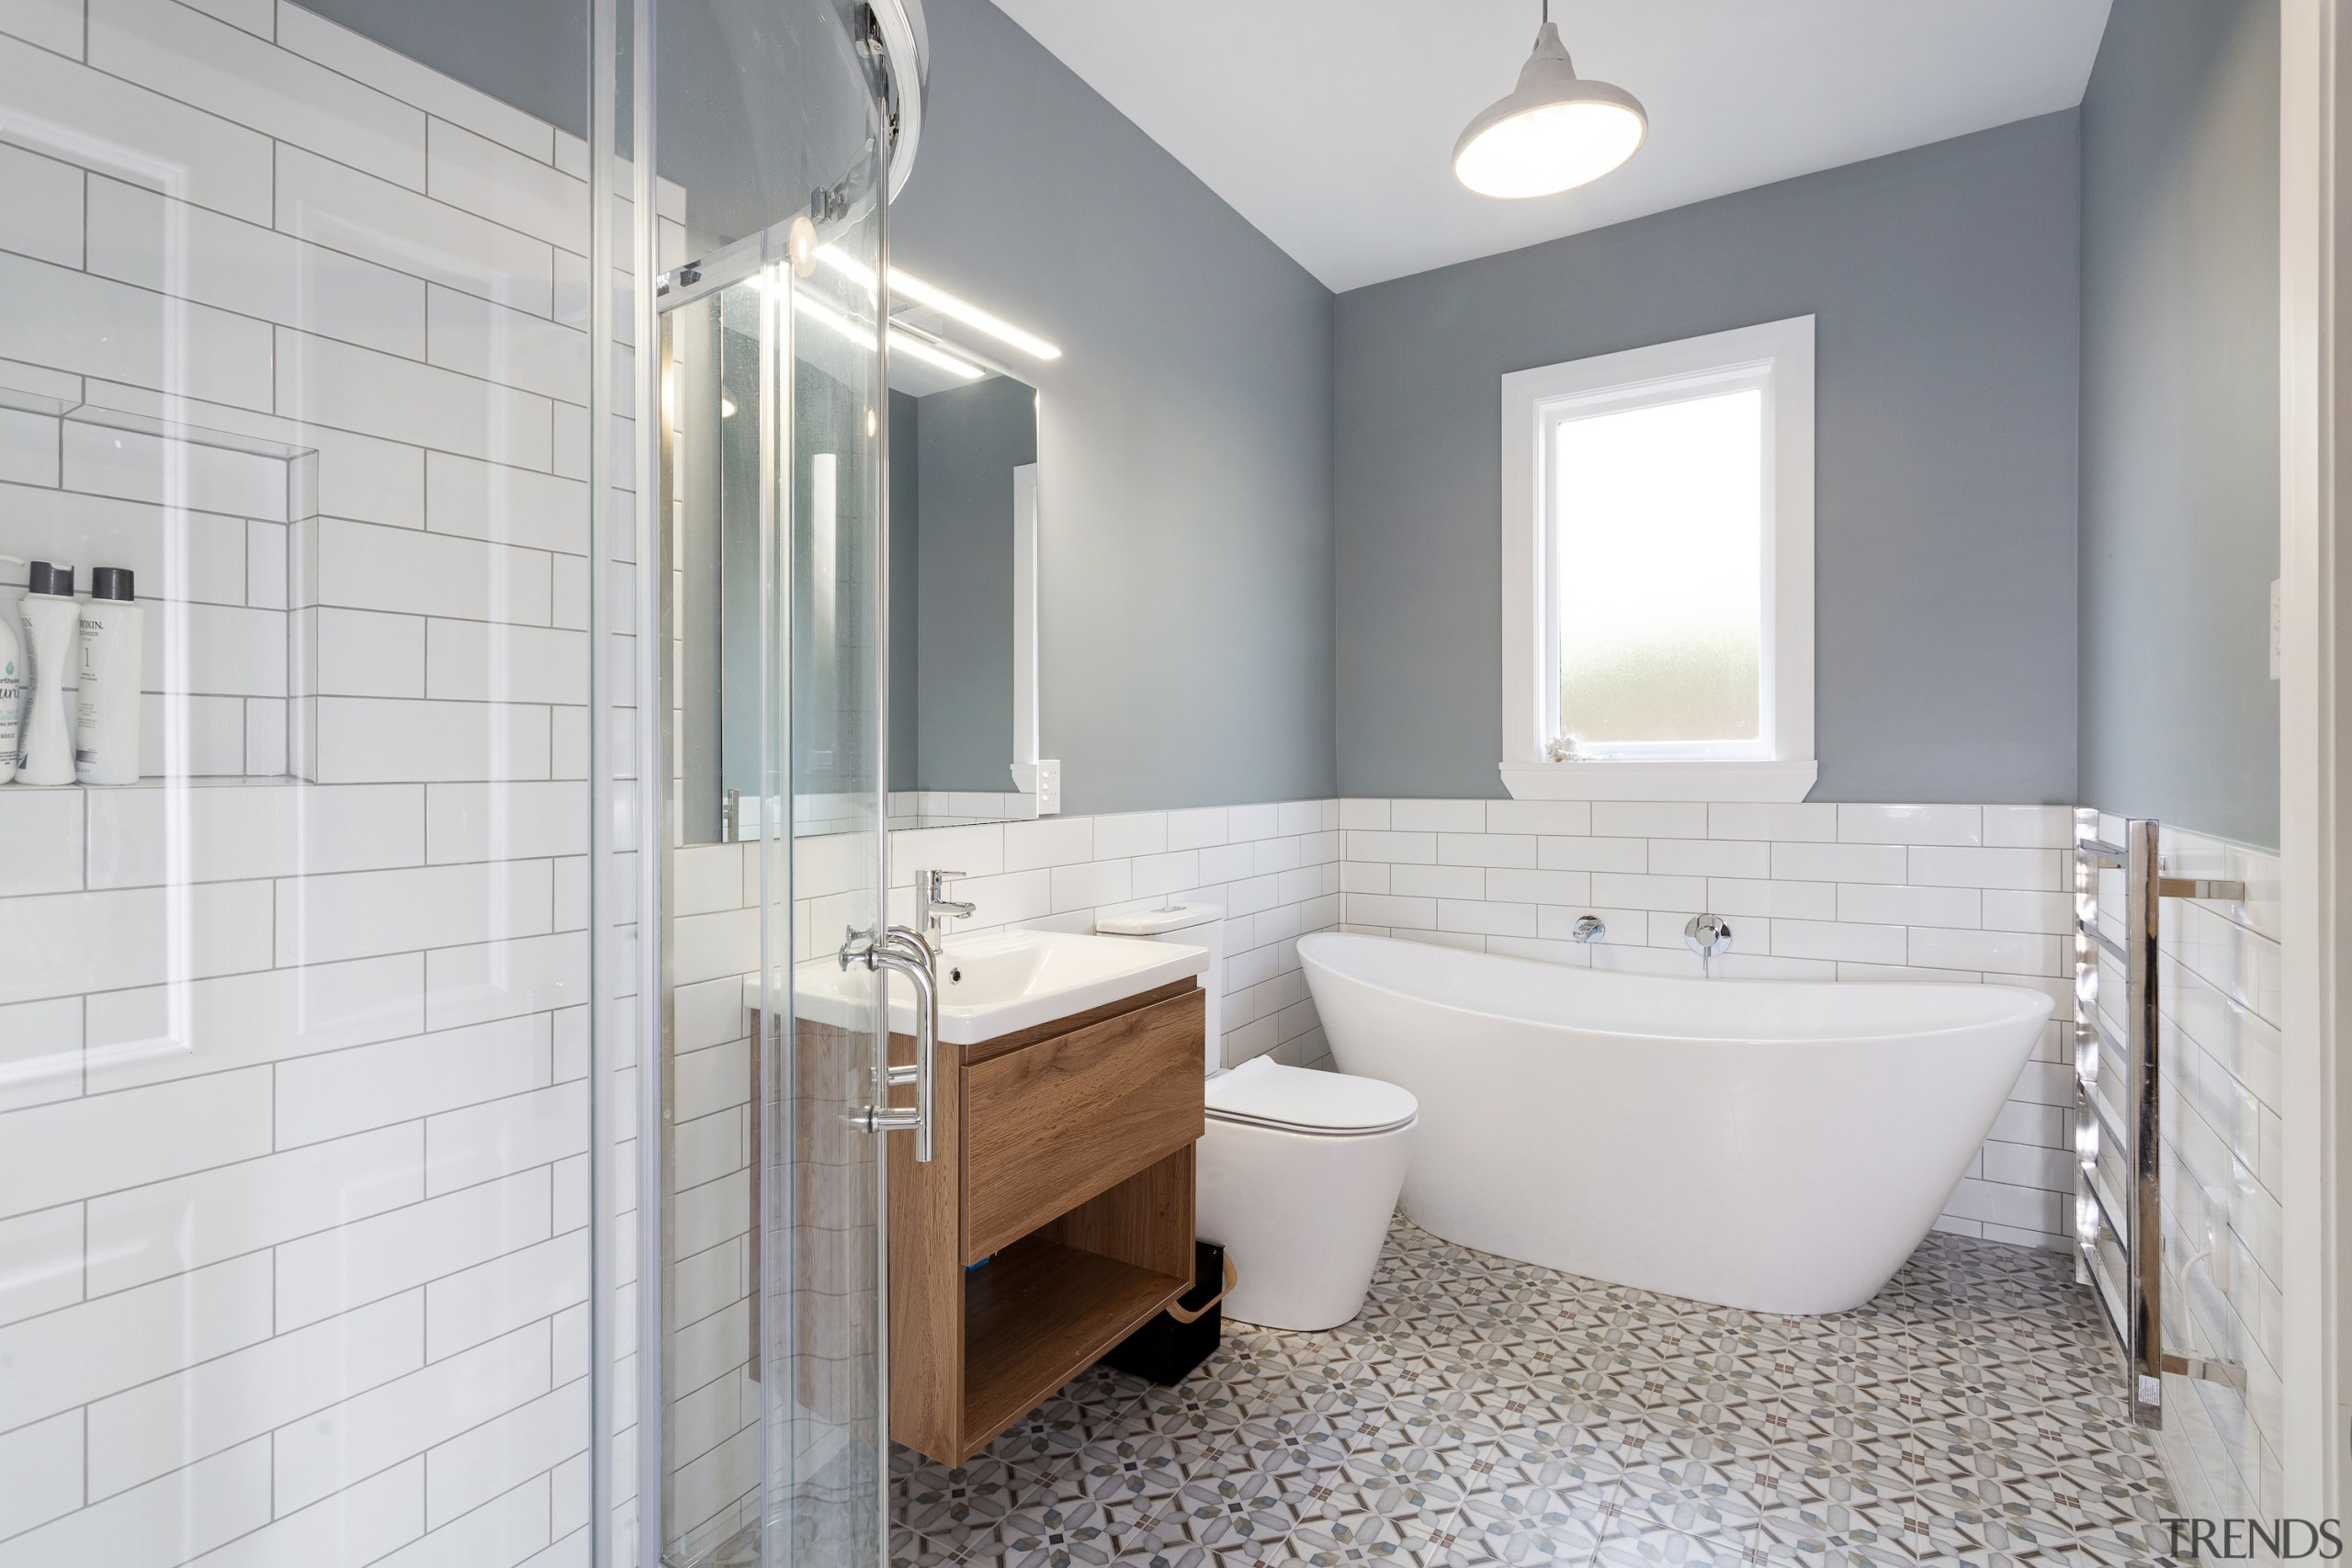 Hunter Anderson Architecture – Highly Commended – 2019 architecture, bathroom, bathroom accessory, bathroom cabinet, building, ceiling, floor, furniture, home, house, interior design, plumbing fixture, property, real estate, room, tile, gray